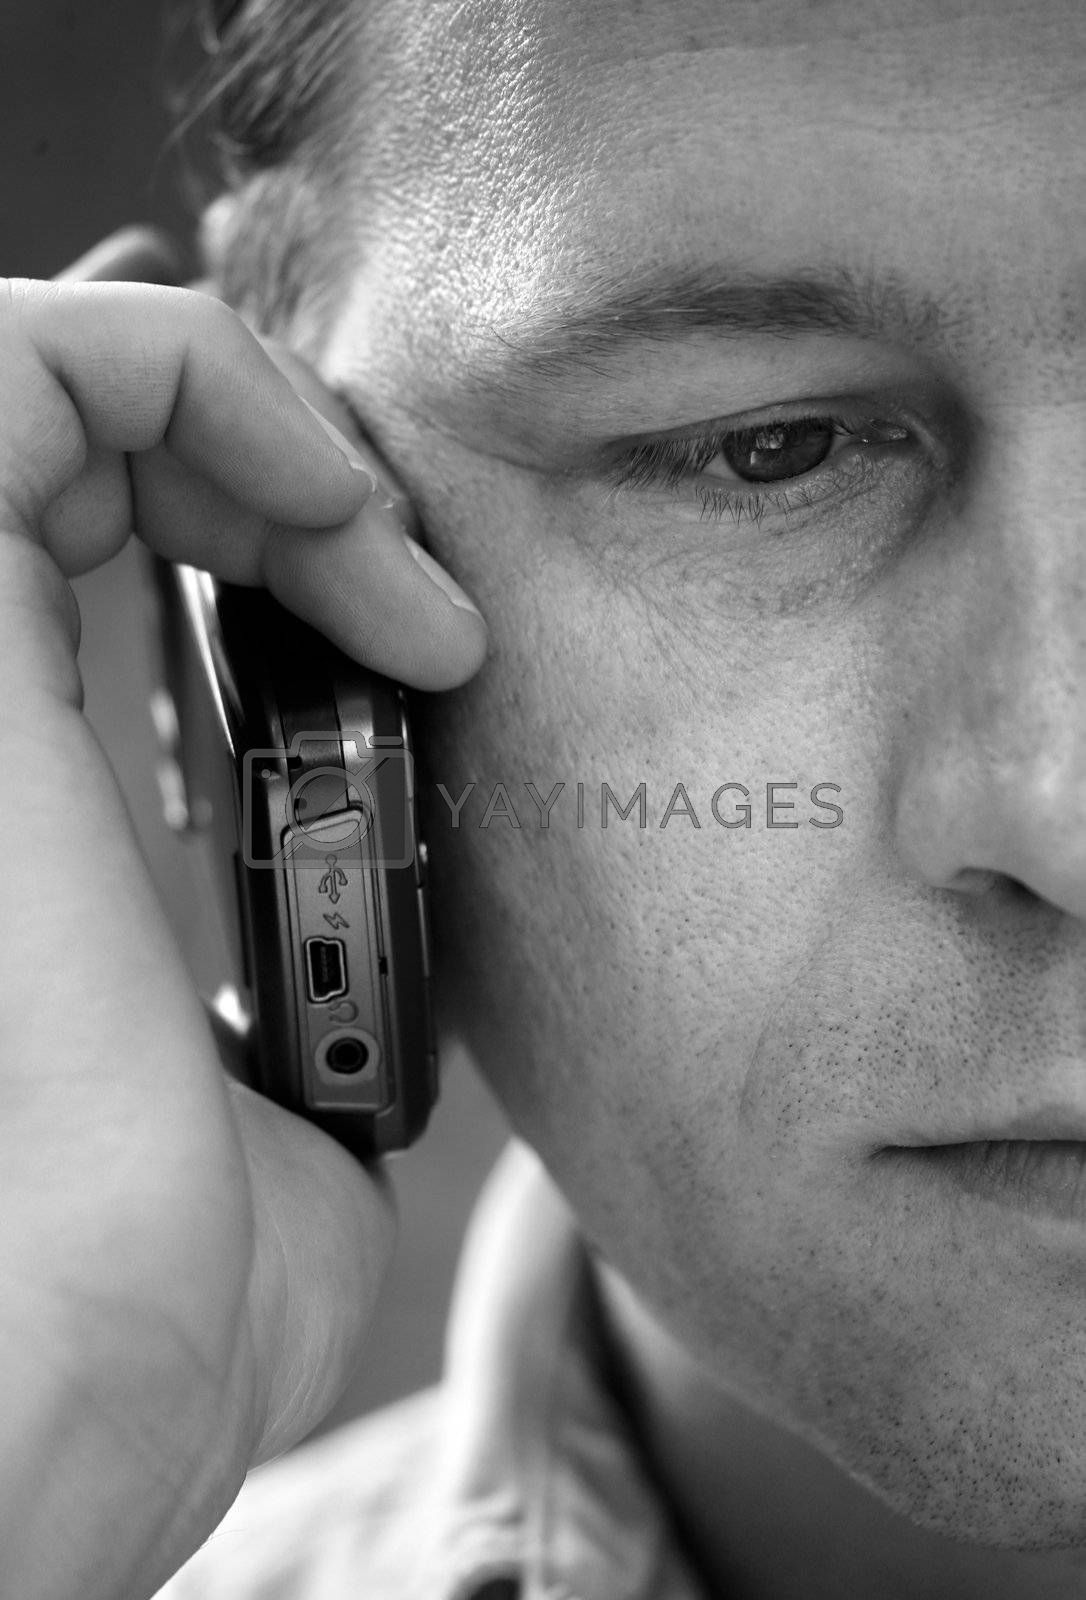 Portrait of the man with the phone close-up